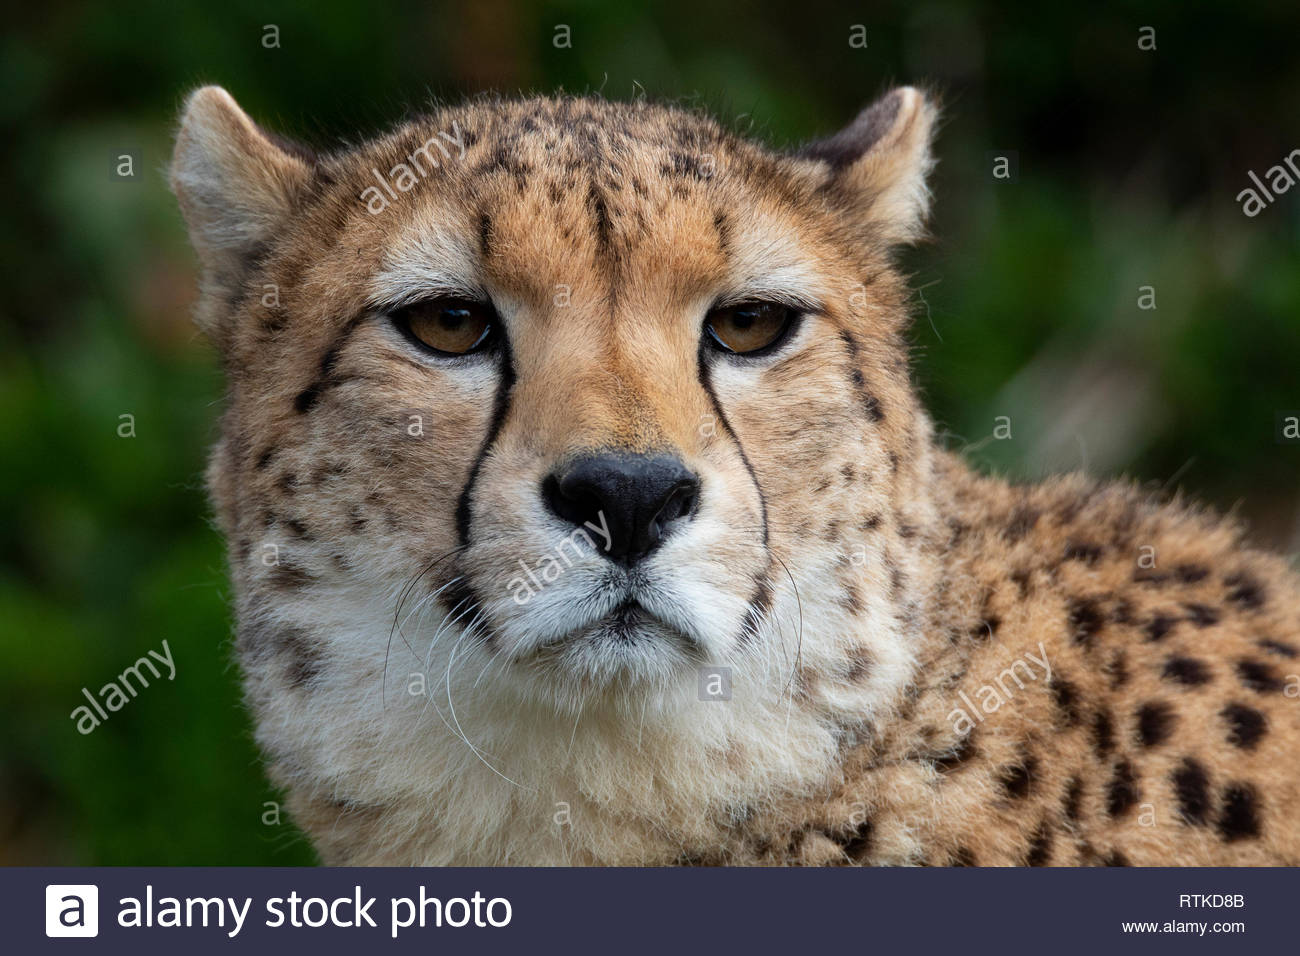 Cheetah DZP - Stock Image